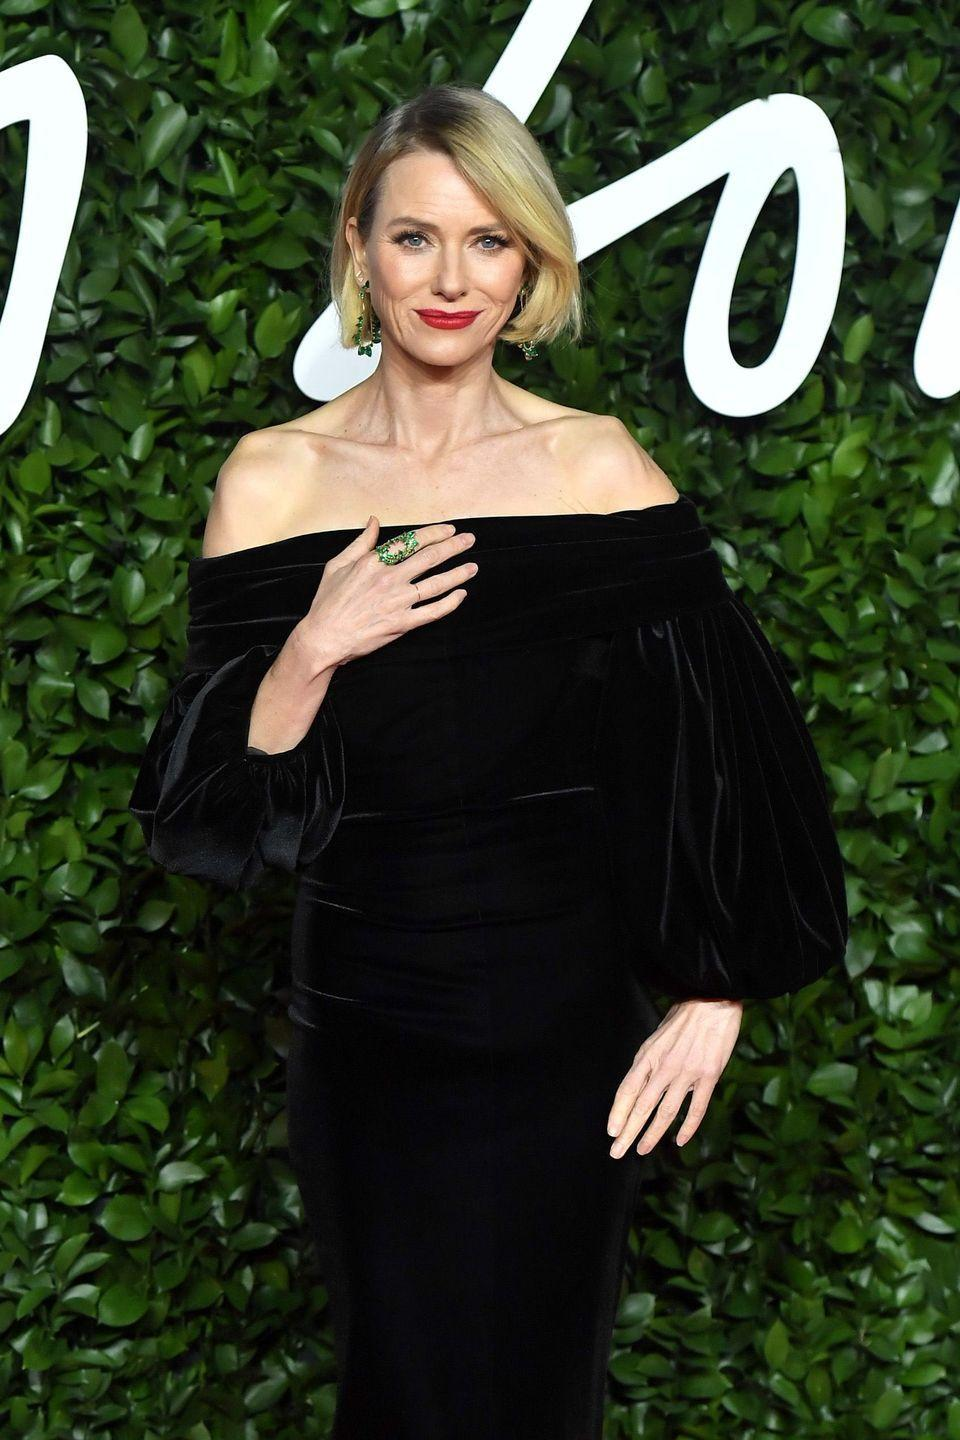 <p>The<em> Mulholland Driv</em>e (2001) and<em> King Kong</em> (2005) actress has started to get into more TV lately. In 2018, she starred as a troubled therapist in Netflix's <em>Gyspy,</em> and in 2019, she played Fox's Gretchen Carlson in the showtime mini-series <em>The Loudest Voice. </em></p>